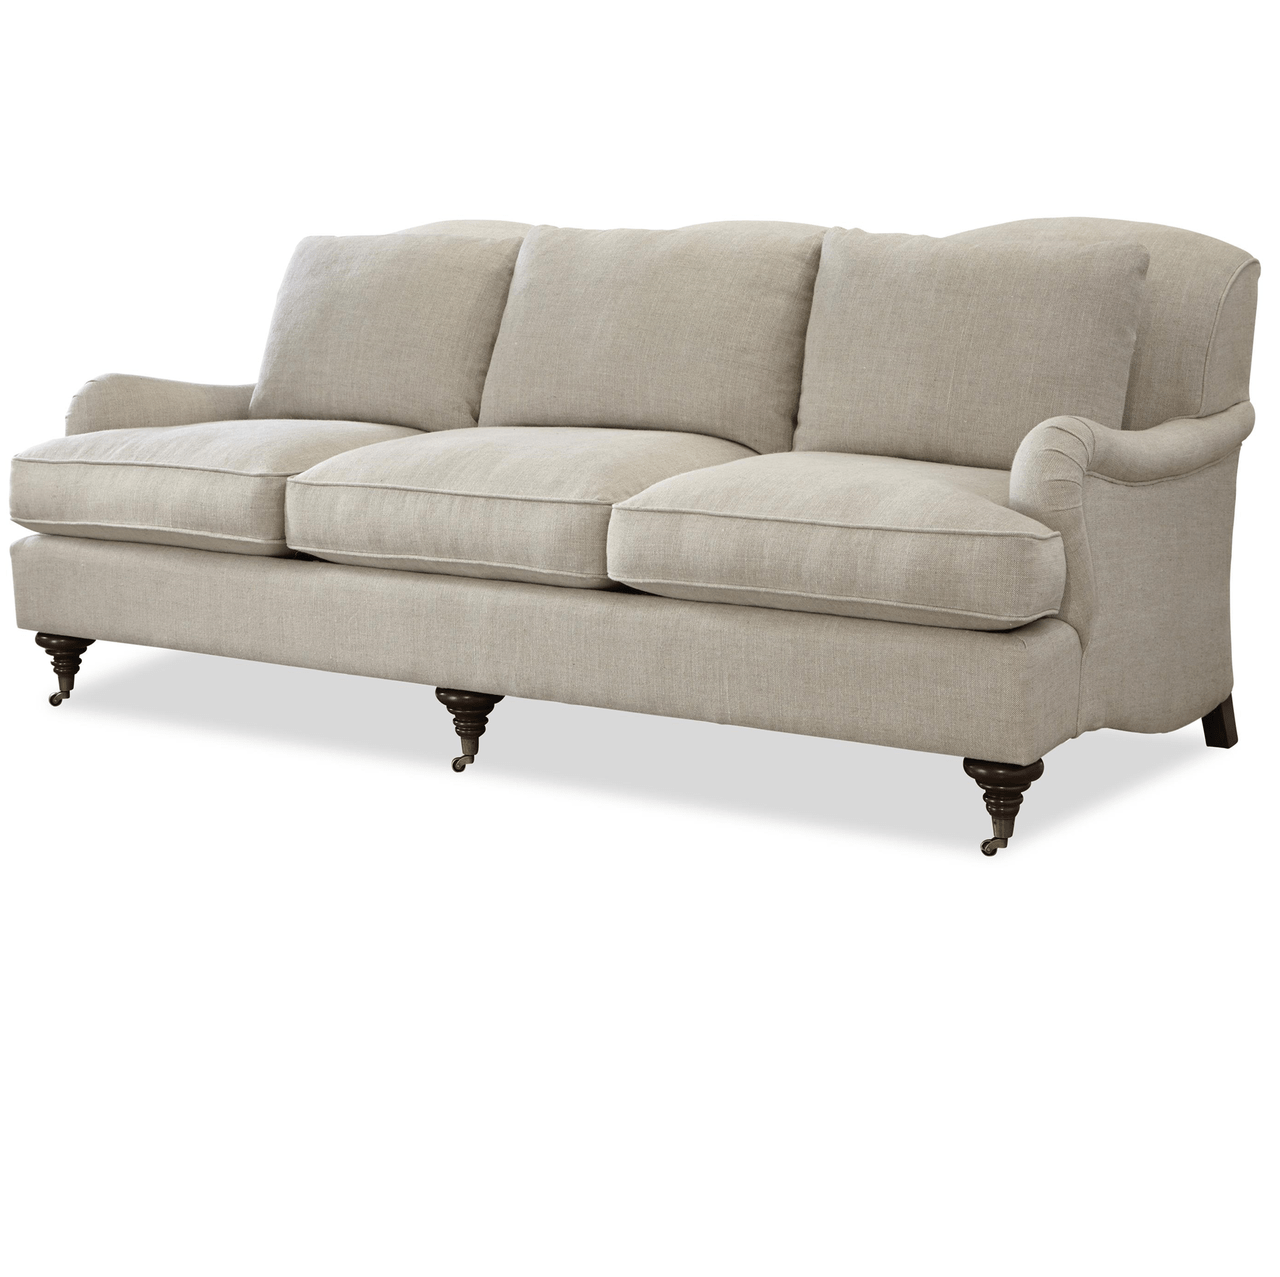 english roll arm sofa picture gallery churchill linen upholstered rolled zin home